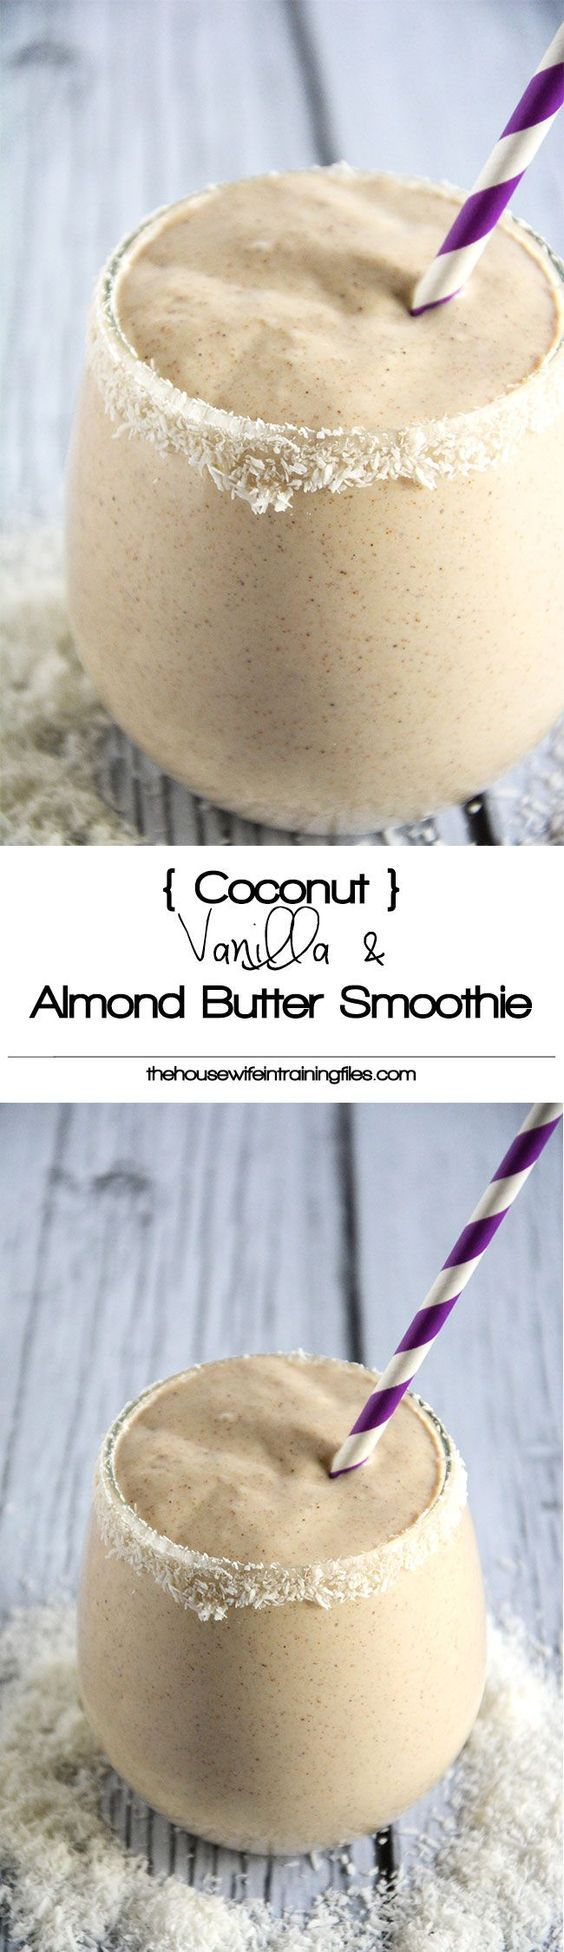 A velvety smoothie made with coconut milk, vanilla, almond butter and sweetened with dates! #smoothie #almondbutter #paleo